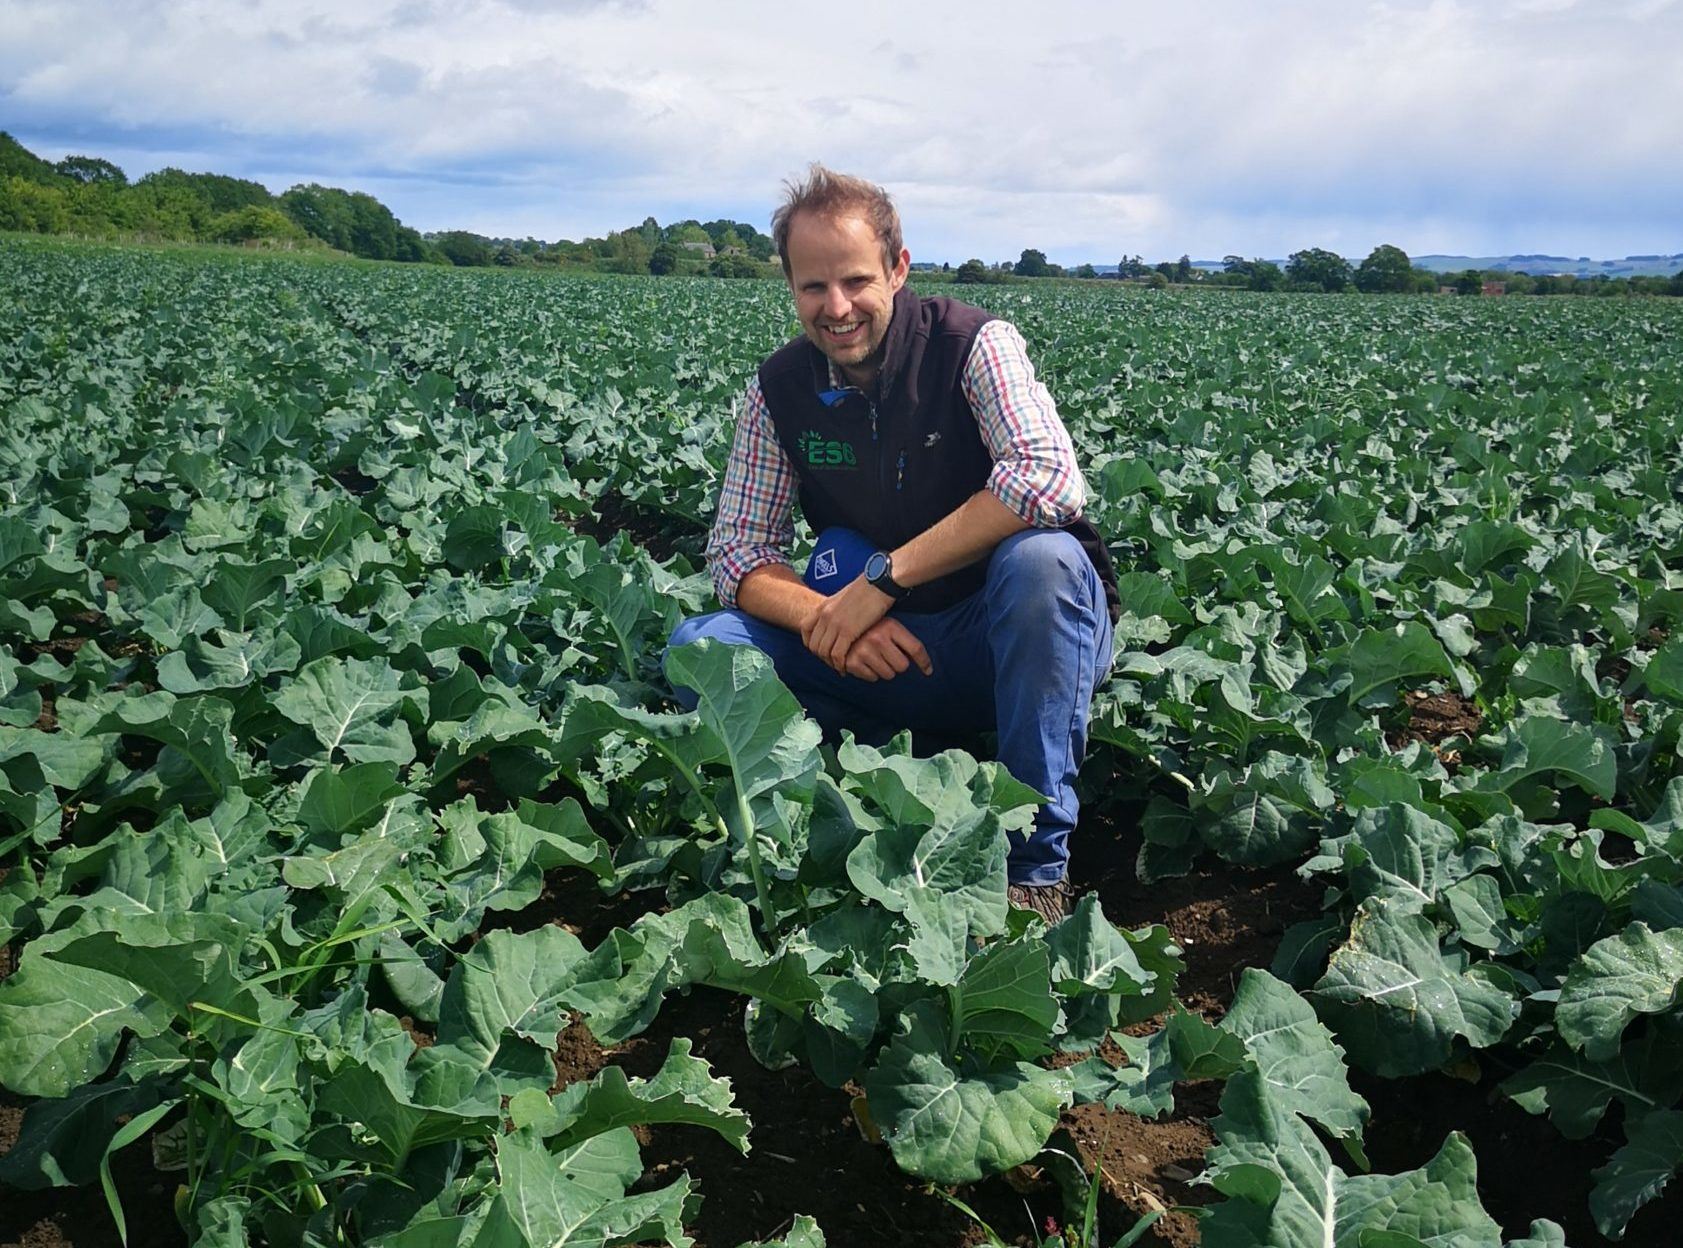 ESG agronomist James Rome hopes trial tests on fields of brassicas will help maximise local growers' crops.